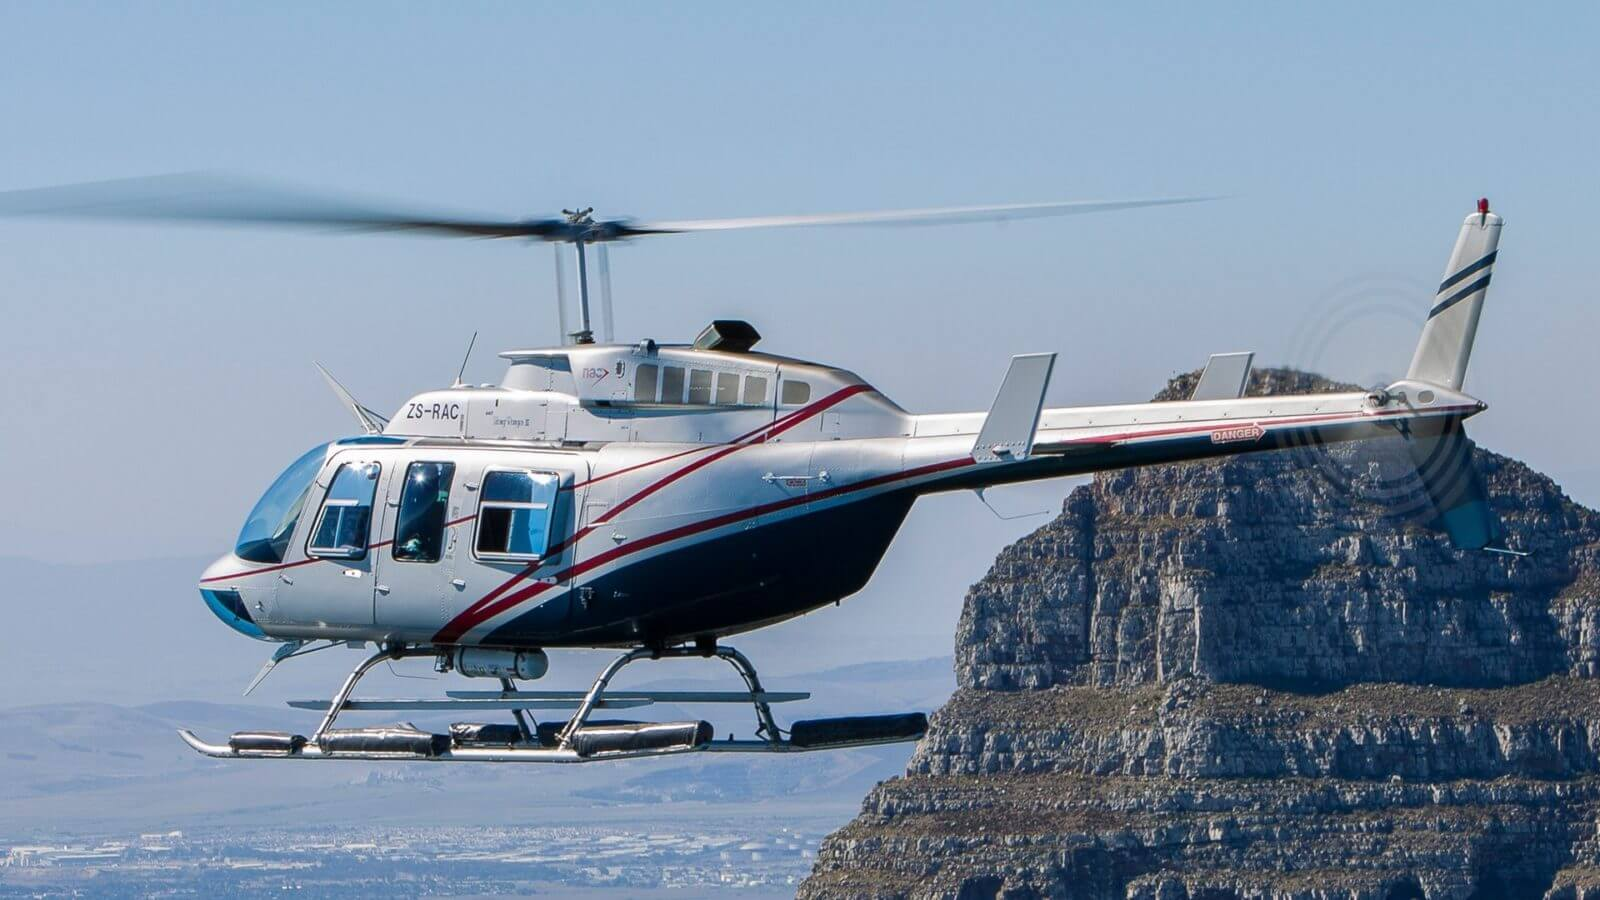 Winetasting-by-luxury-Helicopter-charter-1600x900.jpg